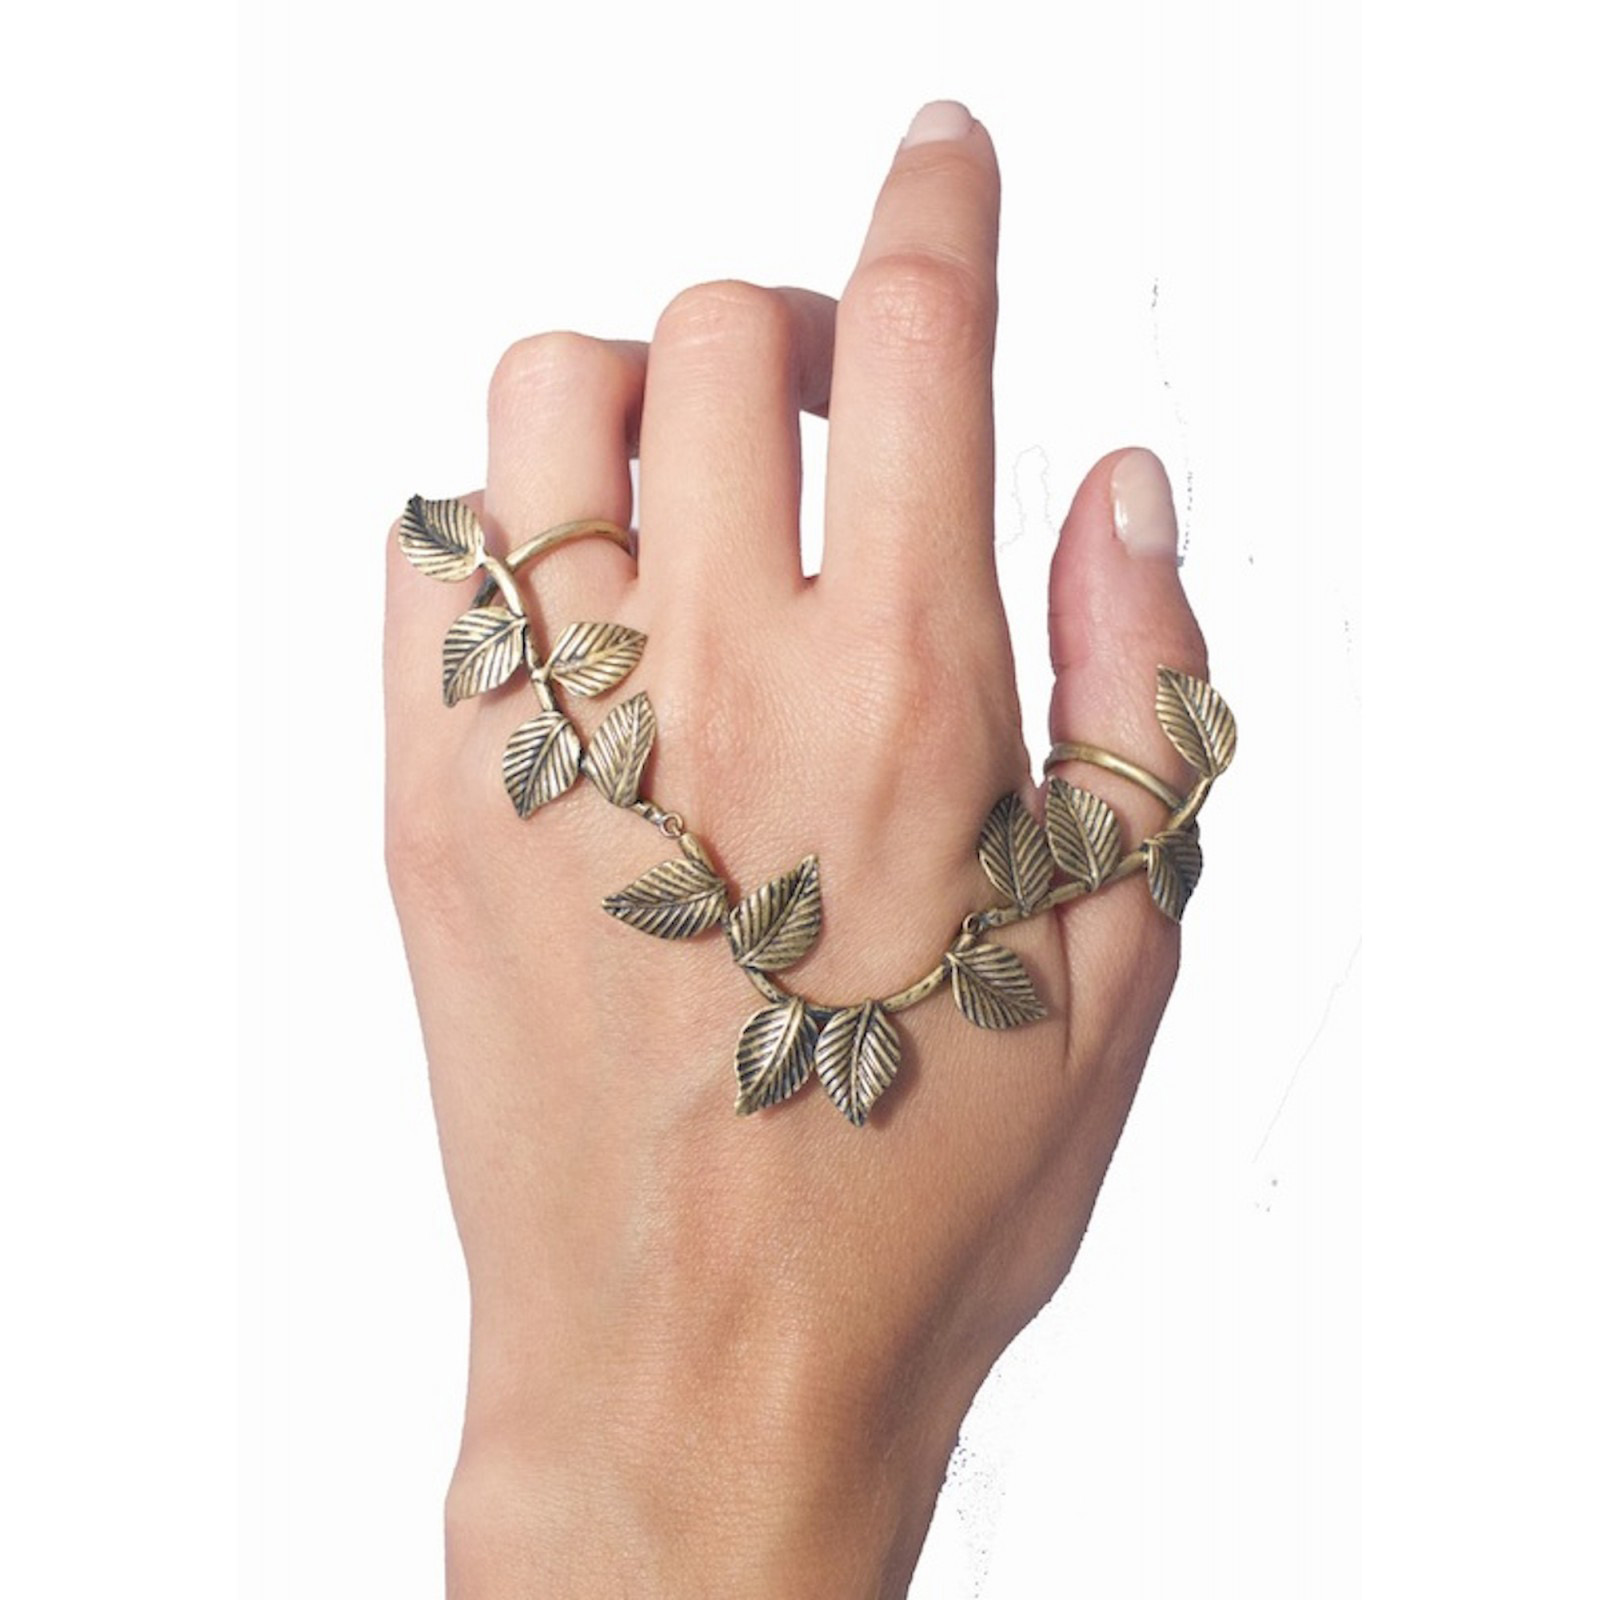 wandg2fingerring.jpg